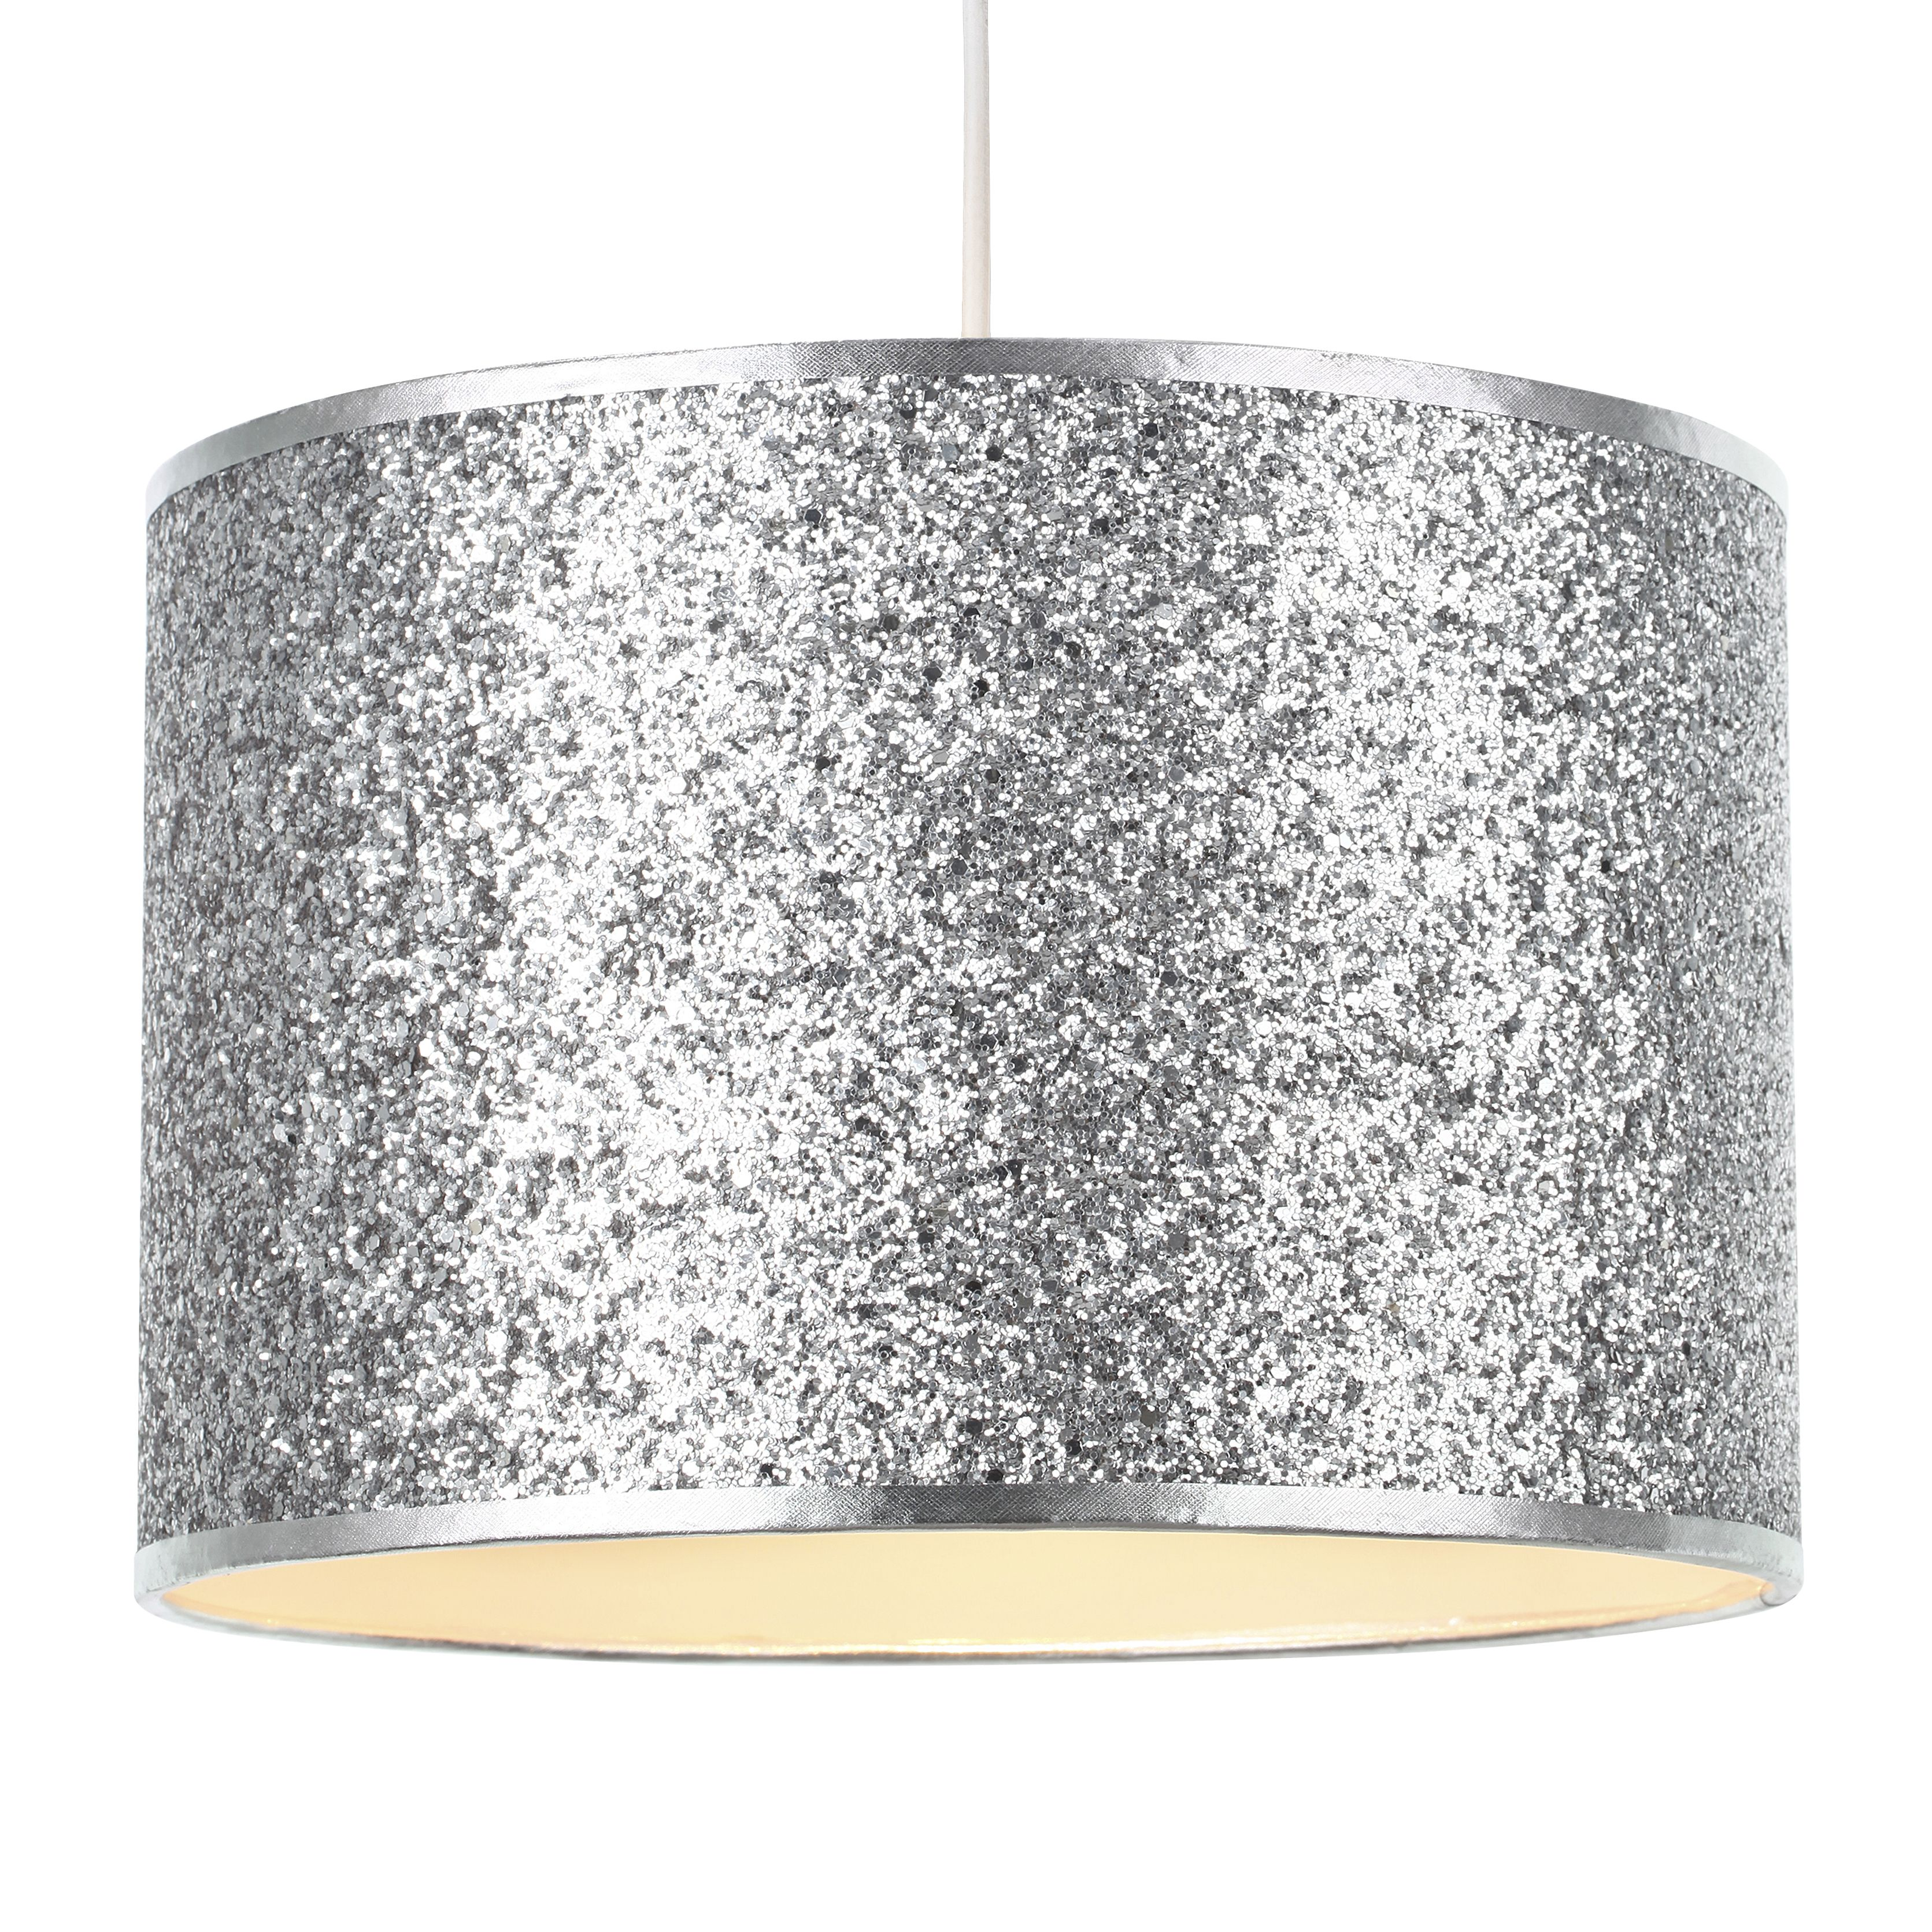 Colours Cirocha Silver Glitter Light Shade D 28cm